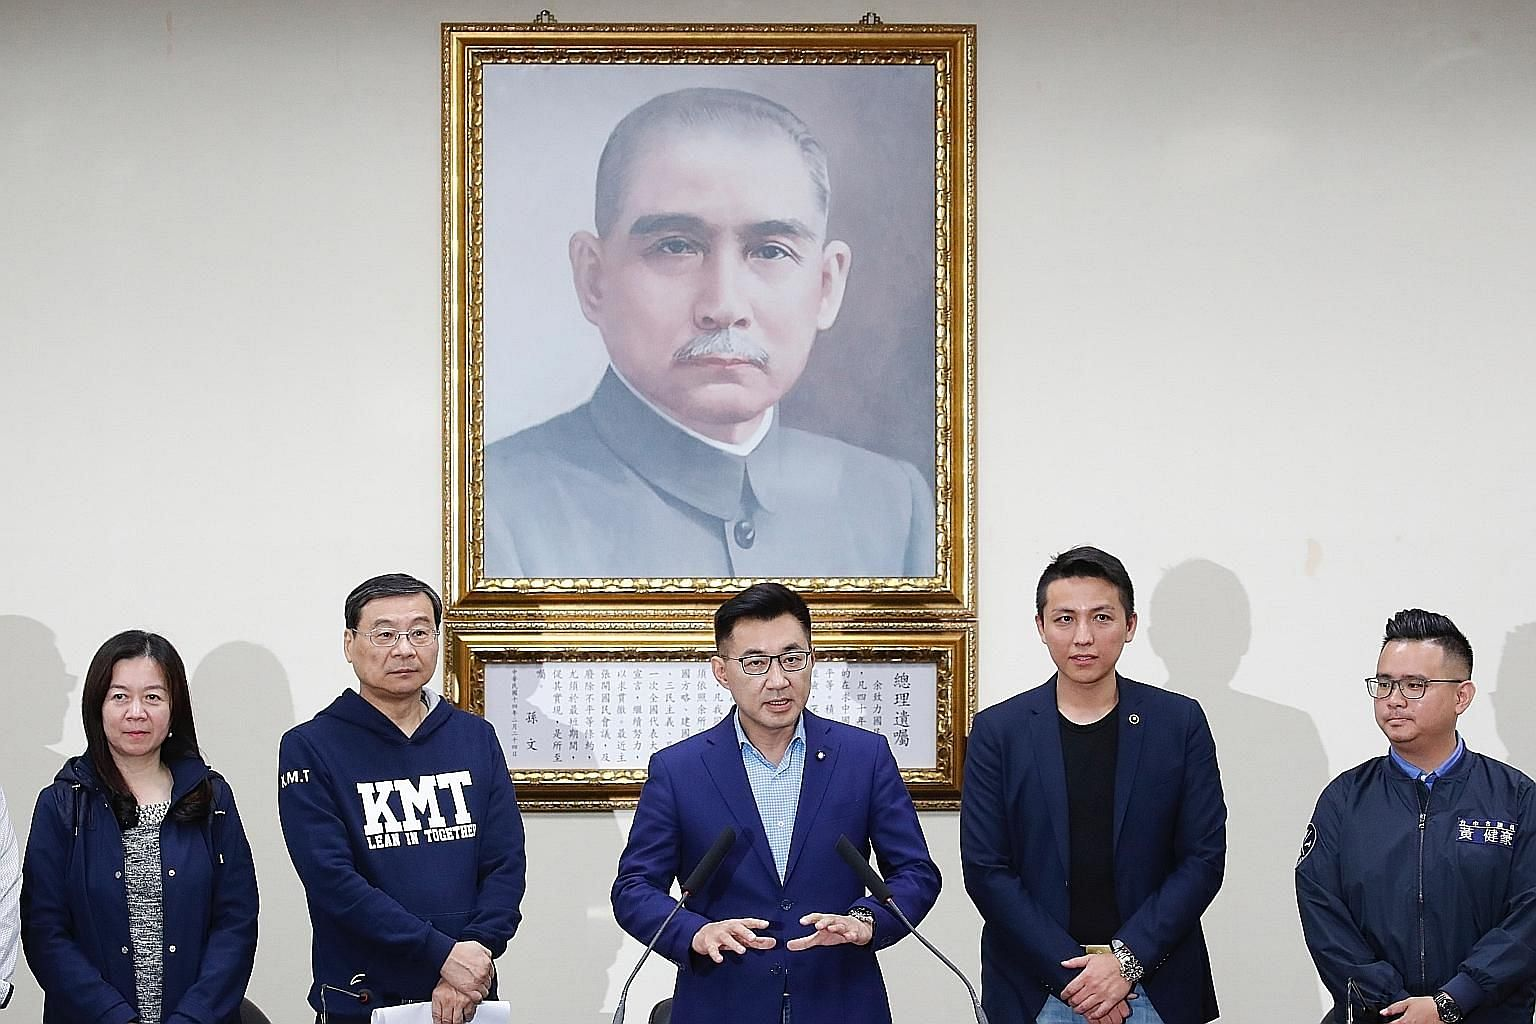 Newly elected Kuomintang chairman Chiang Chi-chen speaking after the party's election in Taipei yesterday. The party's Central Standing Committee had also resigned over the general election defeat in January, and 32 new members were elected yesterday